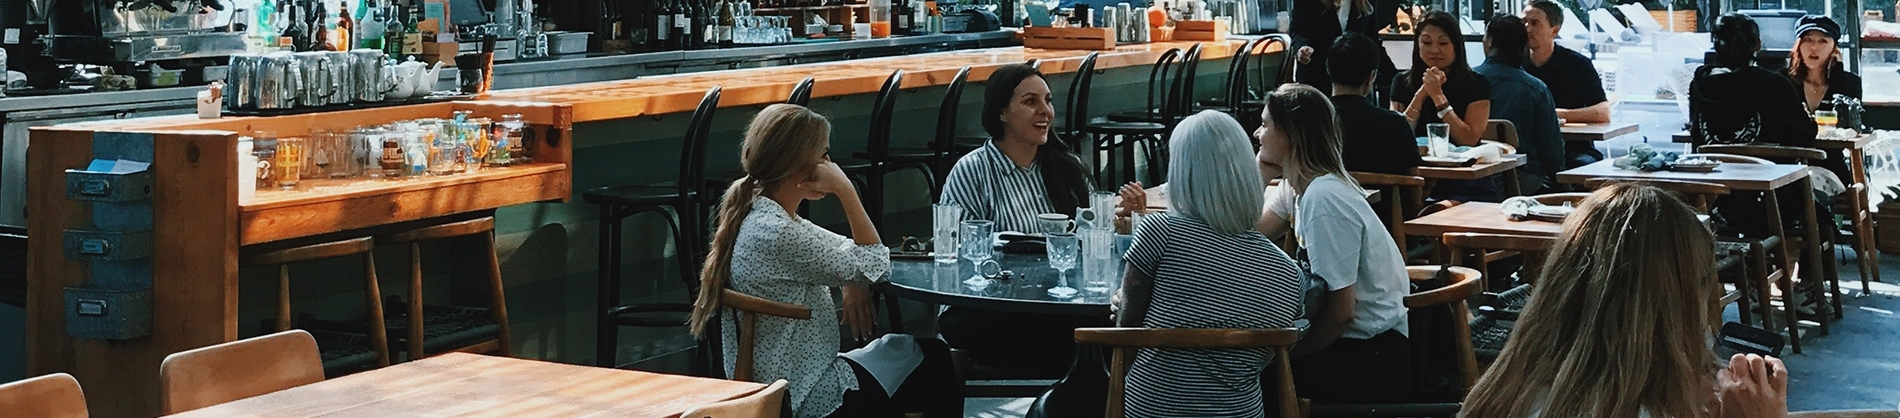 A group of women sat together in a restaurant